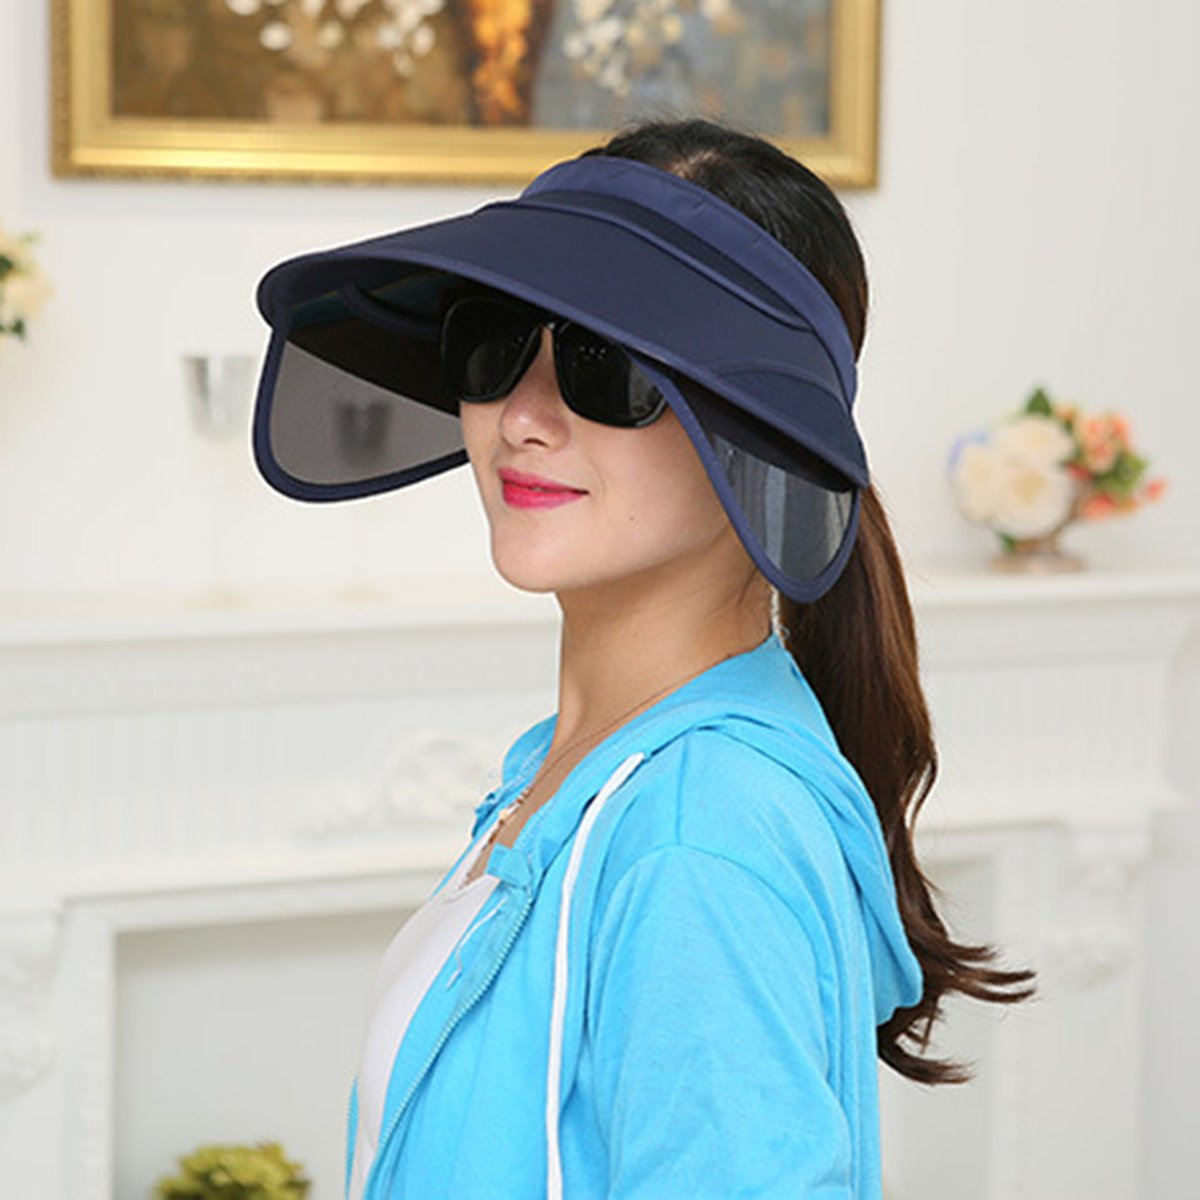 Eforstore New Chic Pure Color Wide Brim Sunhat Hat with Retractable Visor